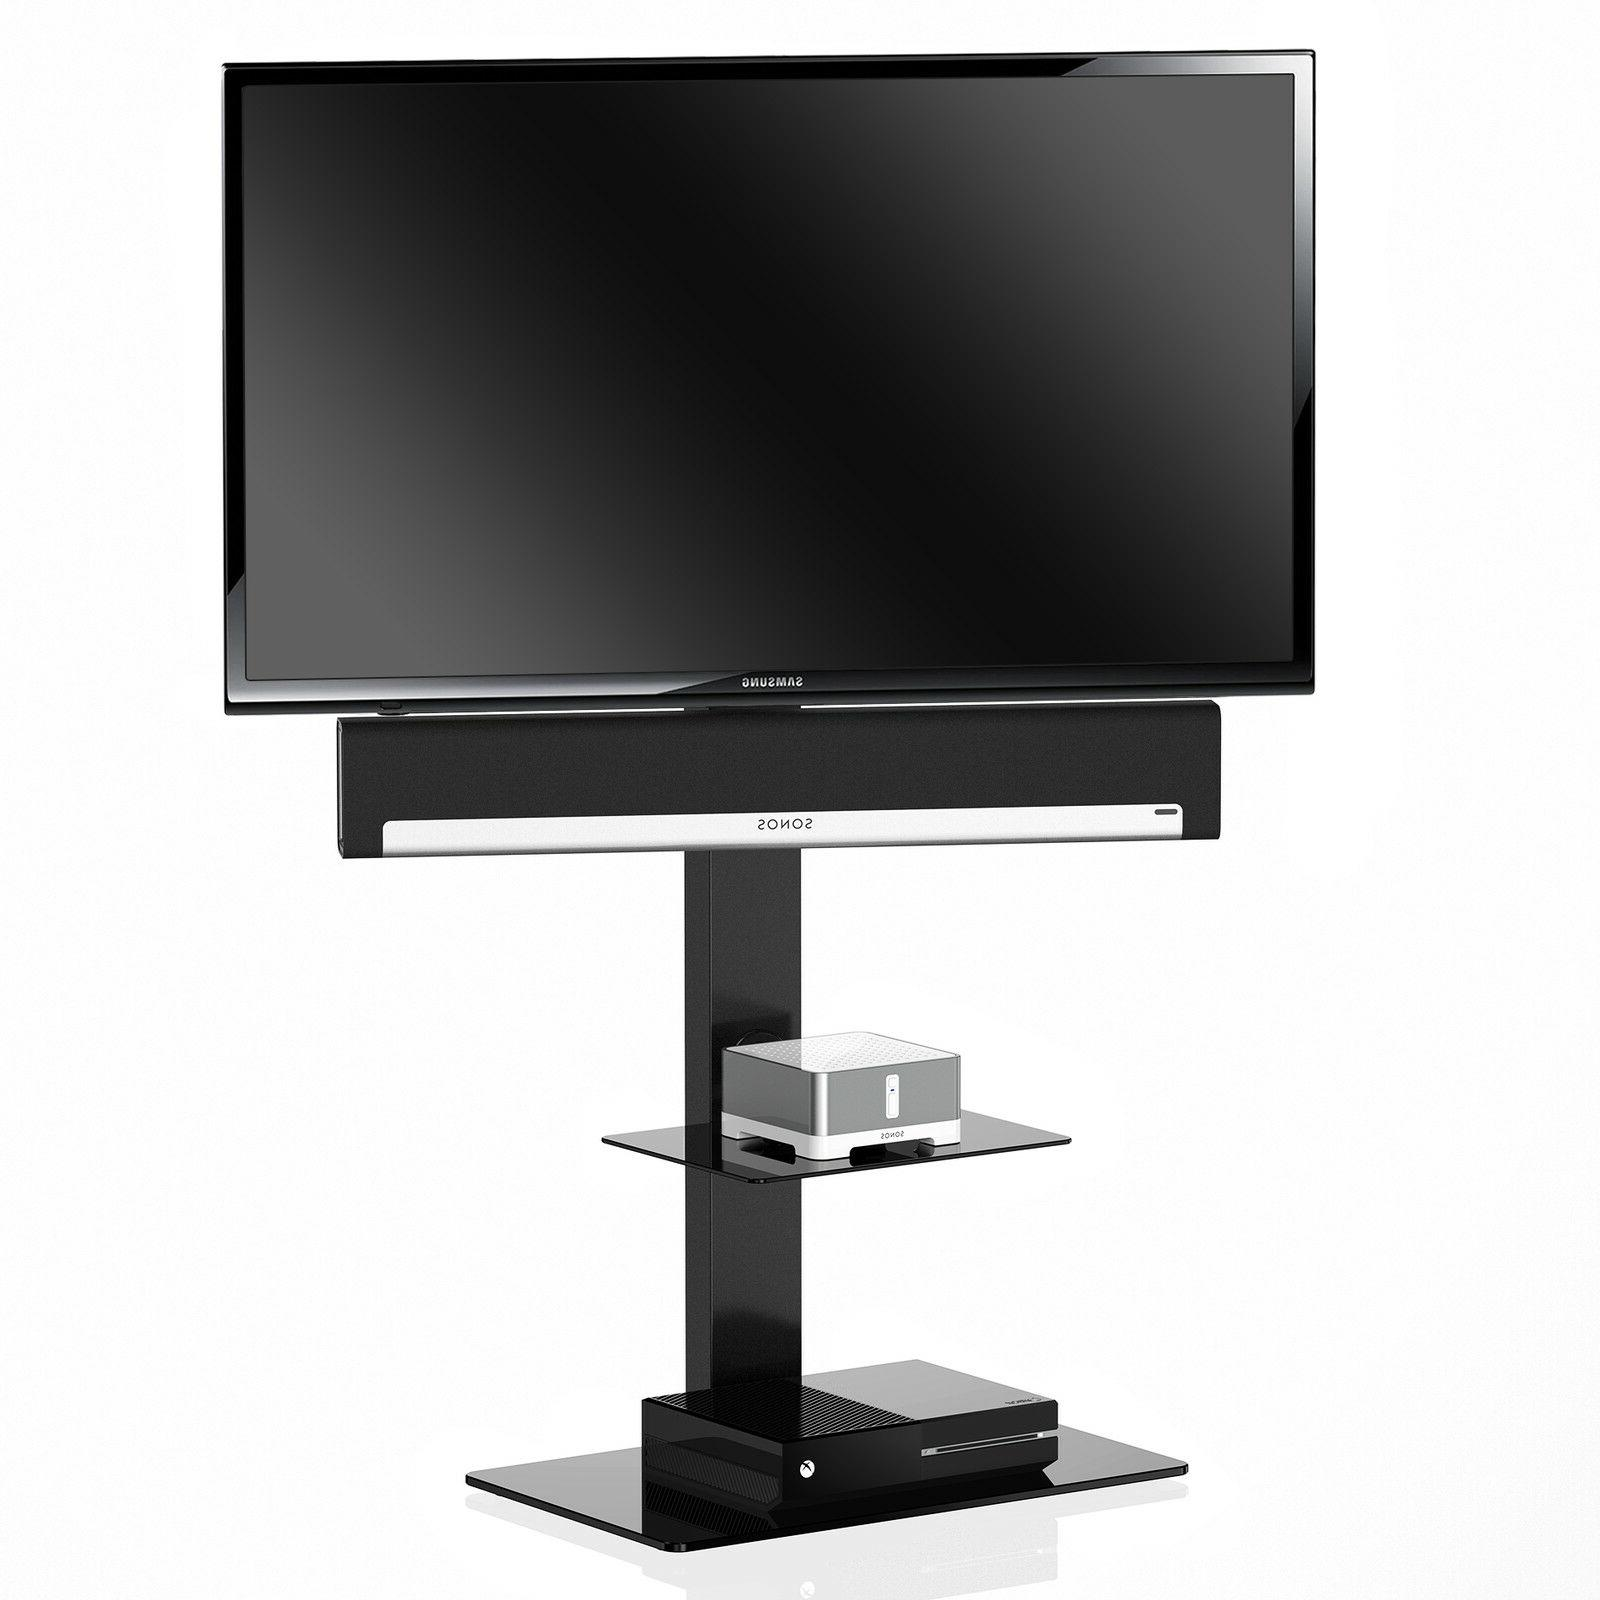 Fitueyes Universal LCD TV Stand With Mount Fits 32,36,42,55,